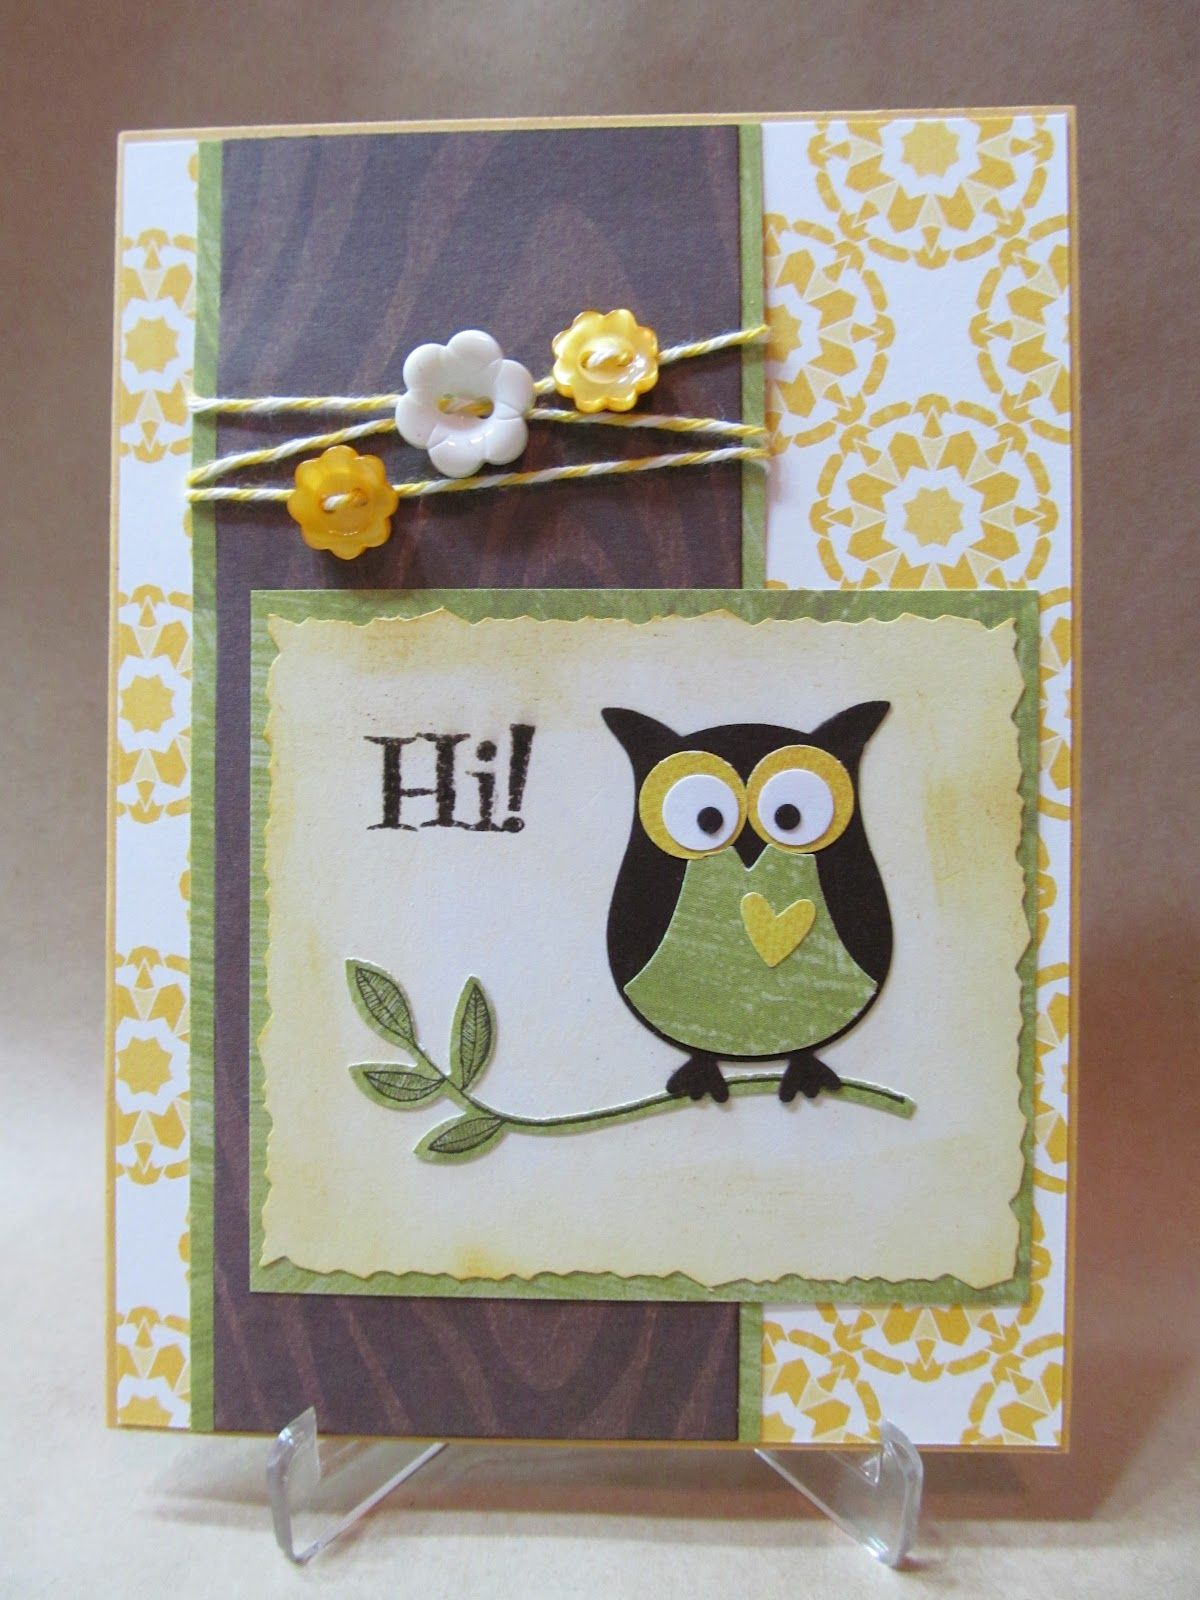 Awesome Card Making Ideas Owls Part - 4: Savvy Handmade Cards: Owl Hi Card